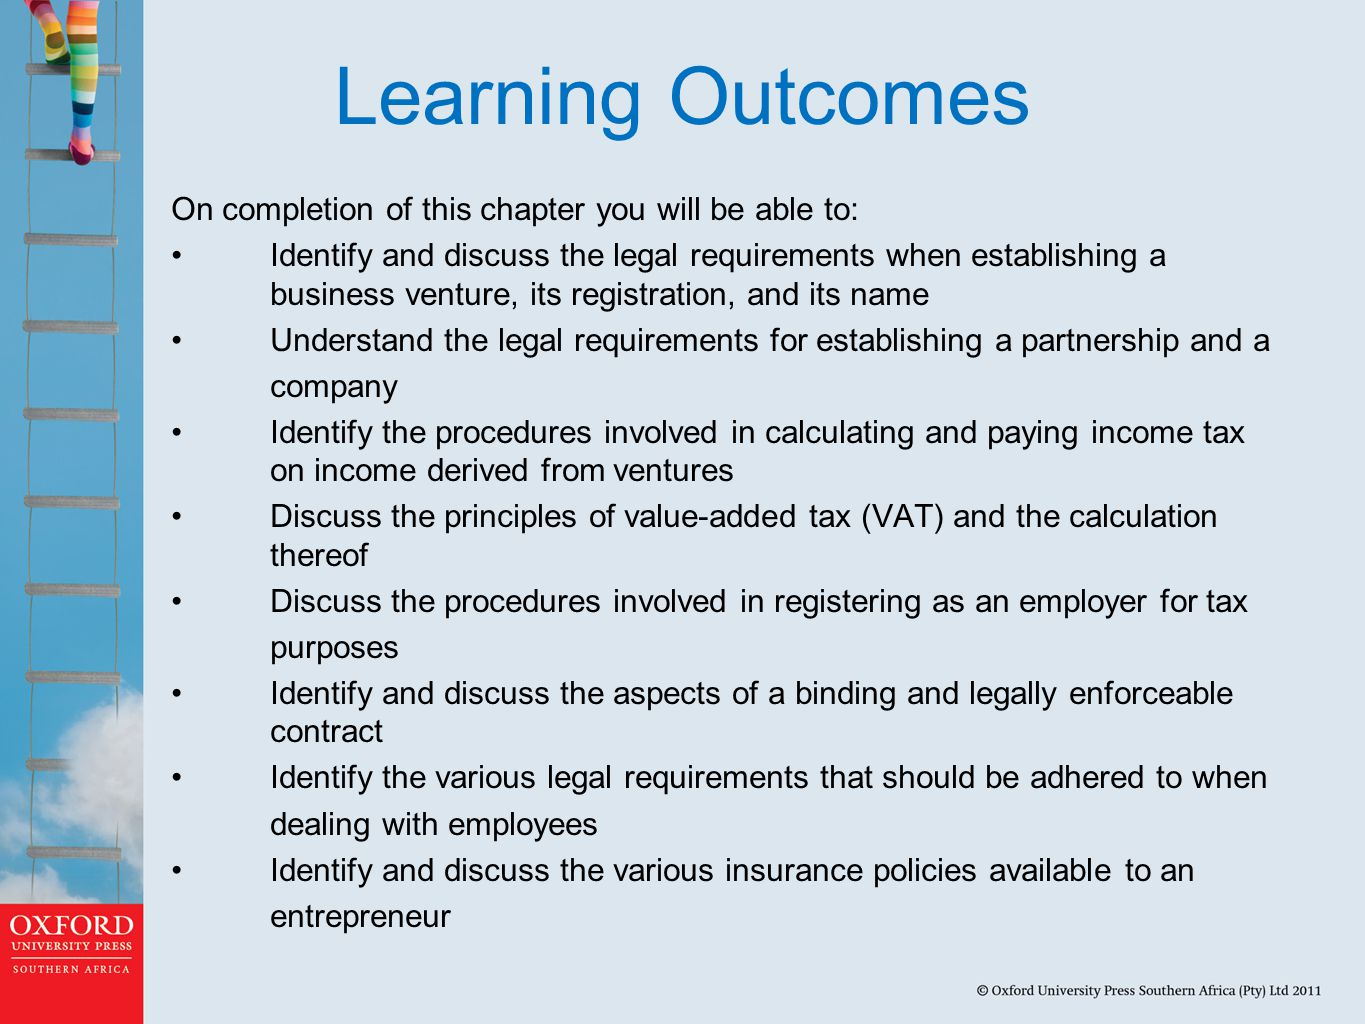 Learning Outcomes On completion of this chapter you will be able to: Identify and discuss the legal requirements when establishing a business venture, its registration, and its name Understand the legal requirements for establishing a partnership and a company Identify the procedures involved in calculating and paying income tax on income derived from ventures Discuss the principles of value-added tax (VAT) and the calculation thereof Discuss the procedures involved in registering as an employer for tax purposes Identify and discuss the aspects of a binding and legally enforceable contract Identify the various legal requirements that should be adhered to when dealing with employees Identify and discuss the various insurance policies available to an entrepreneur